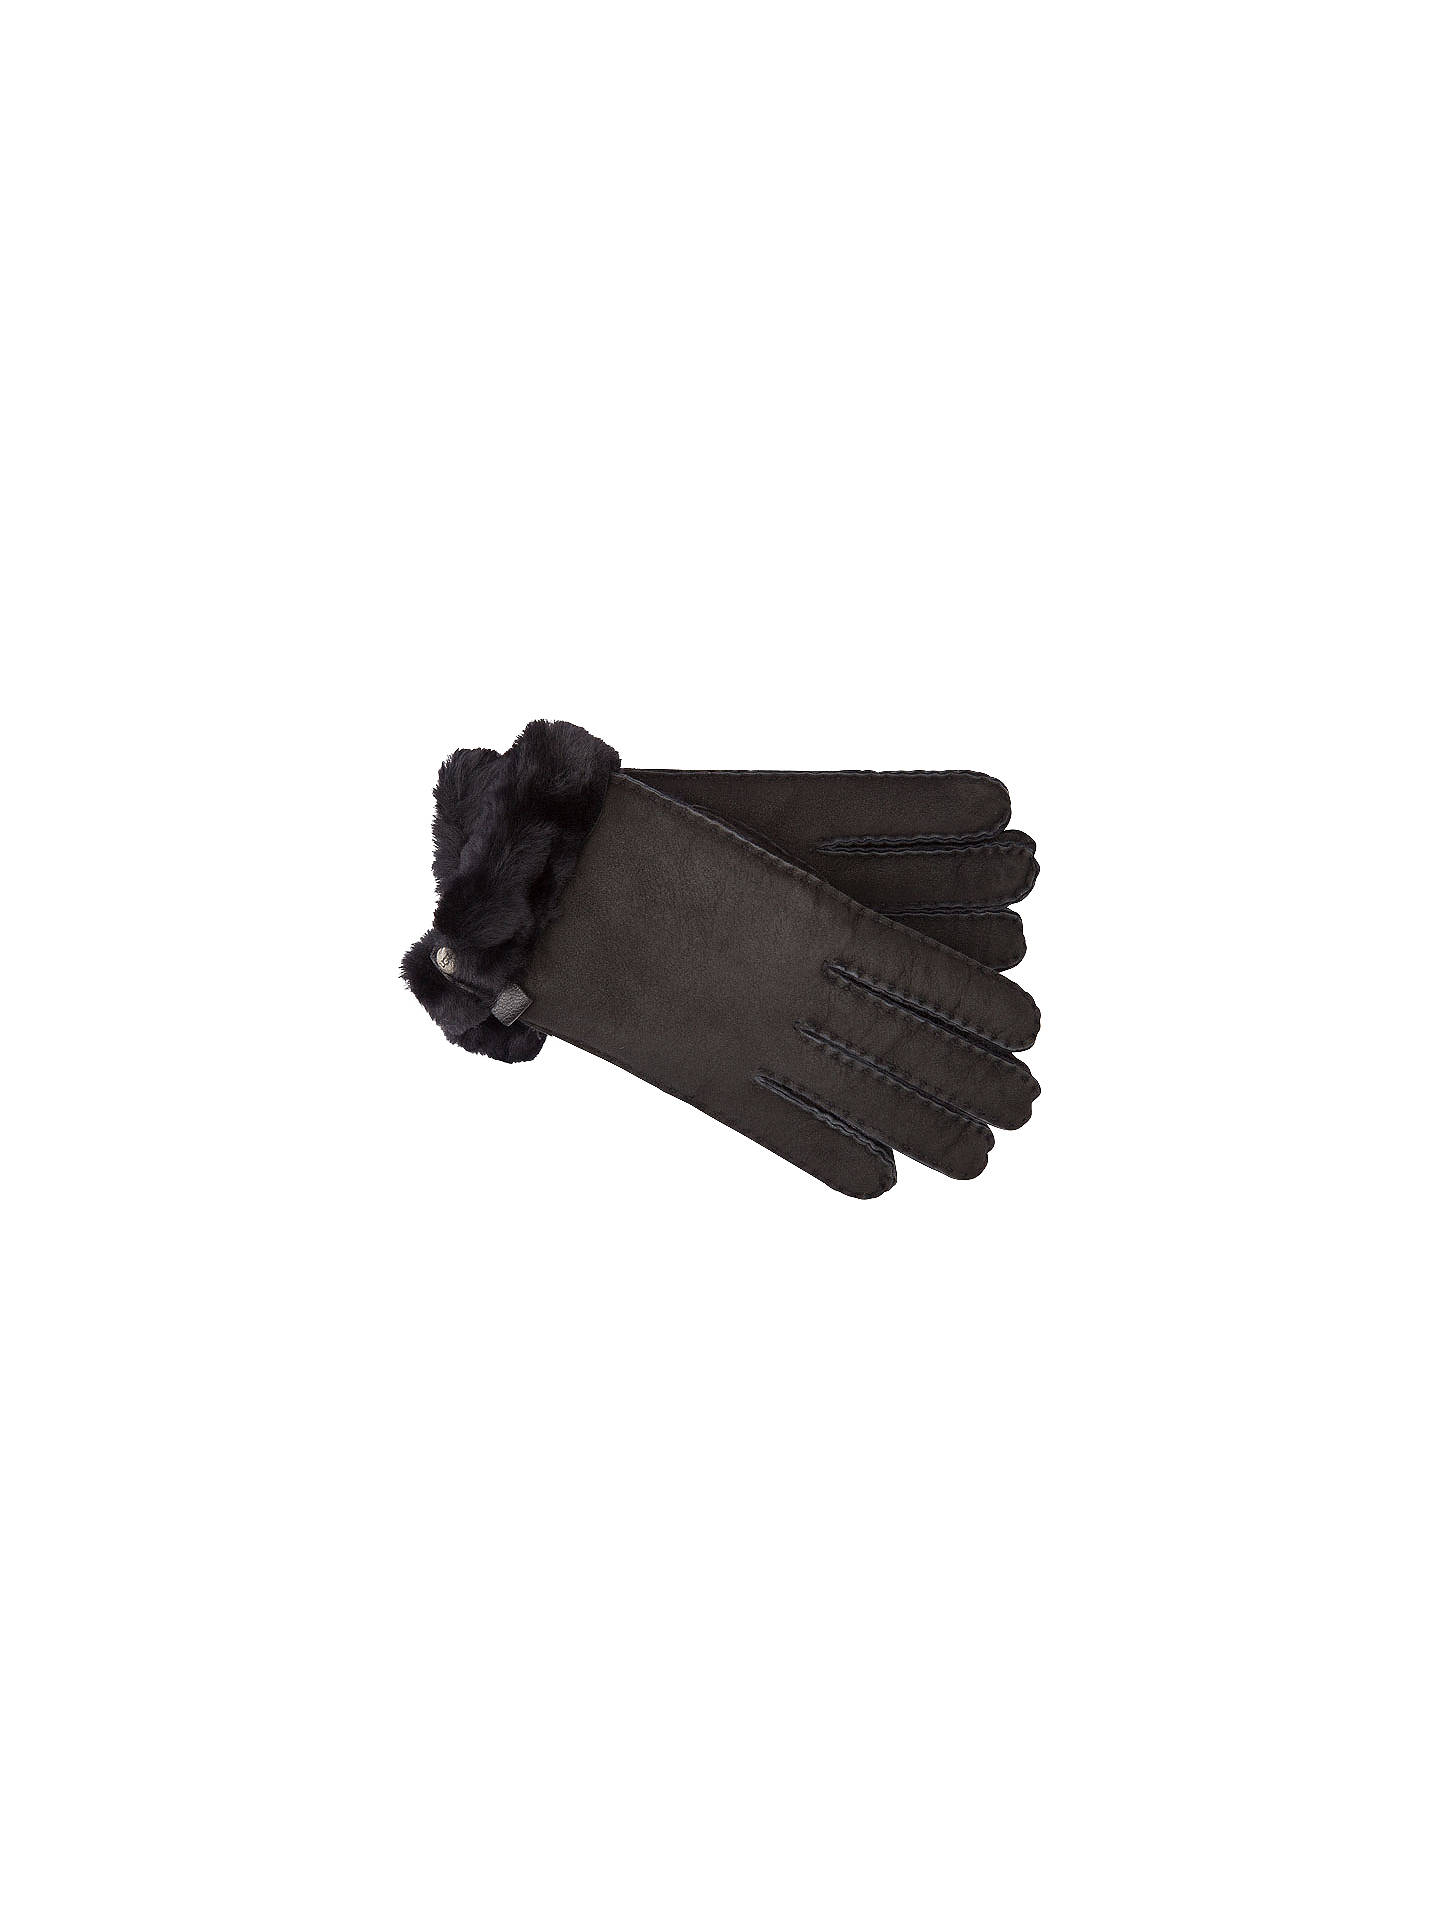 f2ec32b5a Buy UGG Tenney Sheepskin Gloves, Black, S Online at johnlewis.com